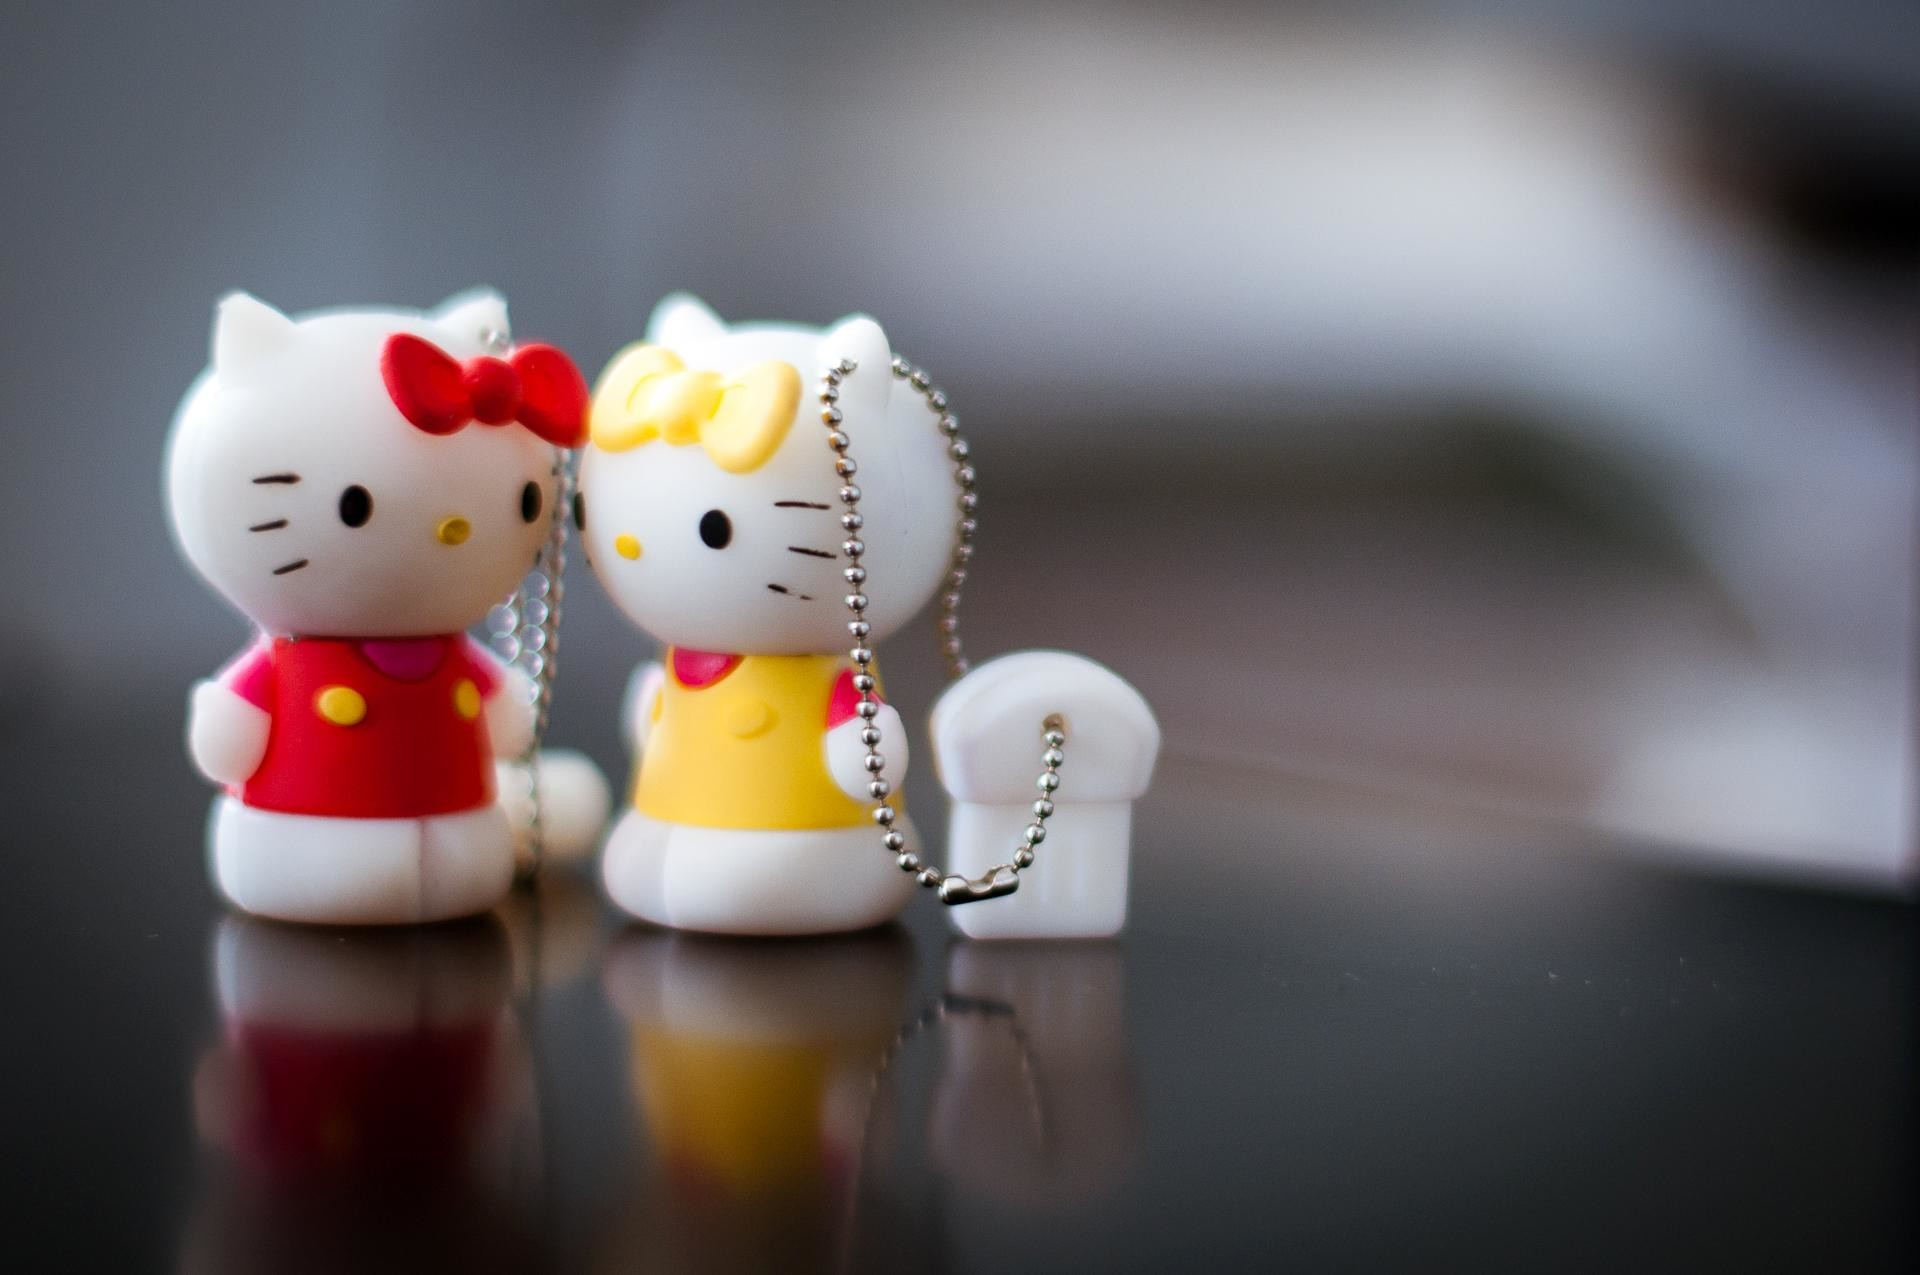 1920x1275 hello kitty red wallpaper ...